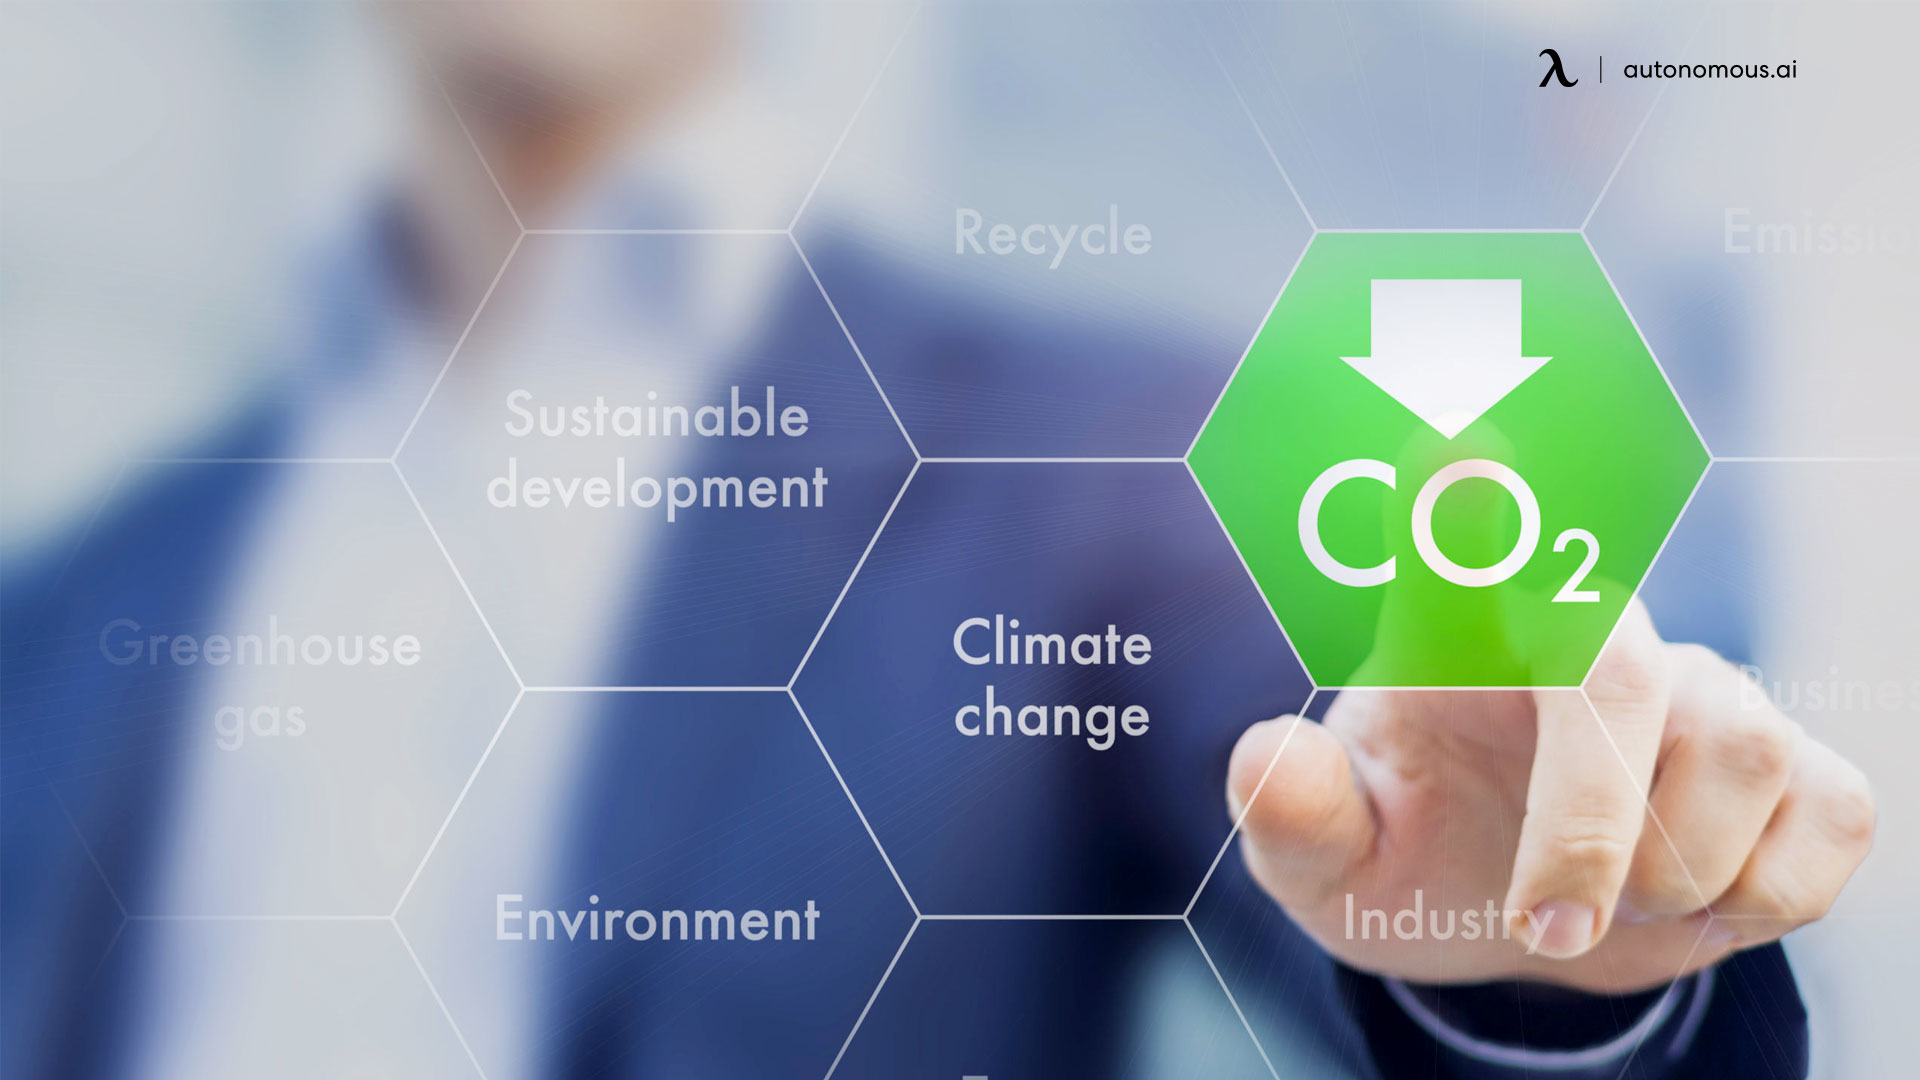 The Businesses Will Have a Reduced Carbon Footprint